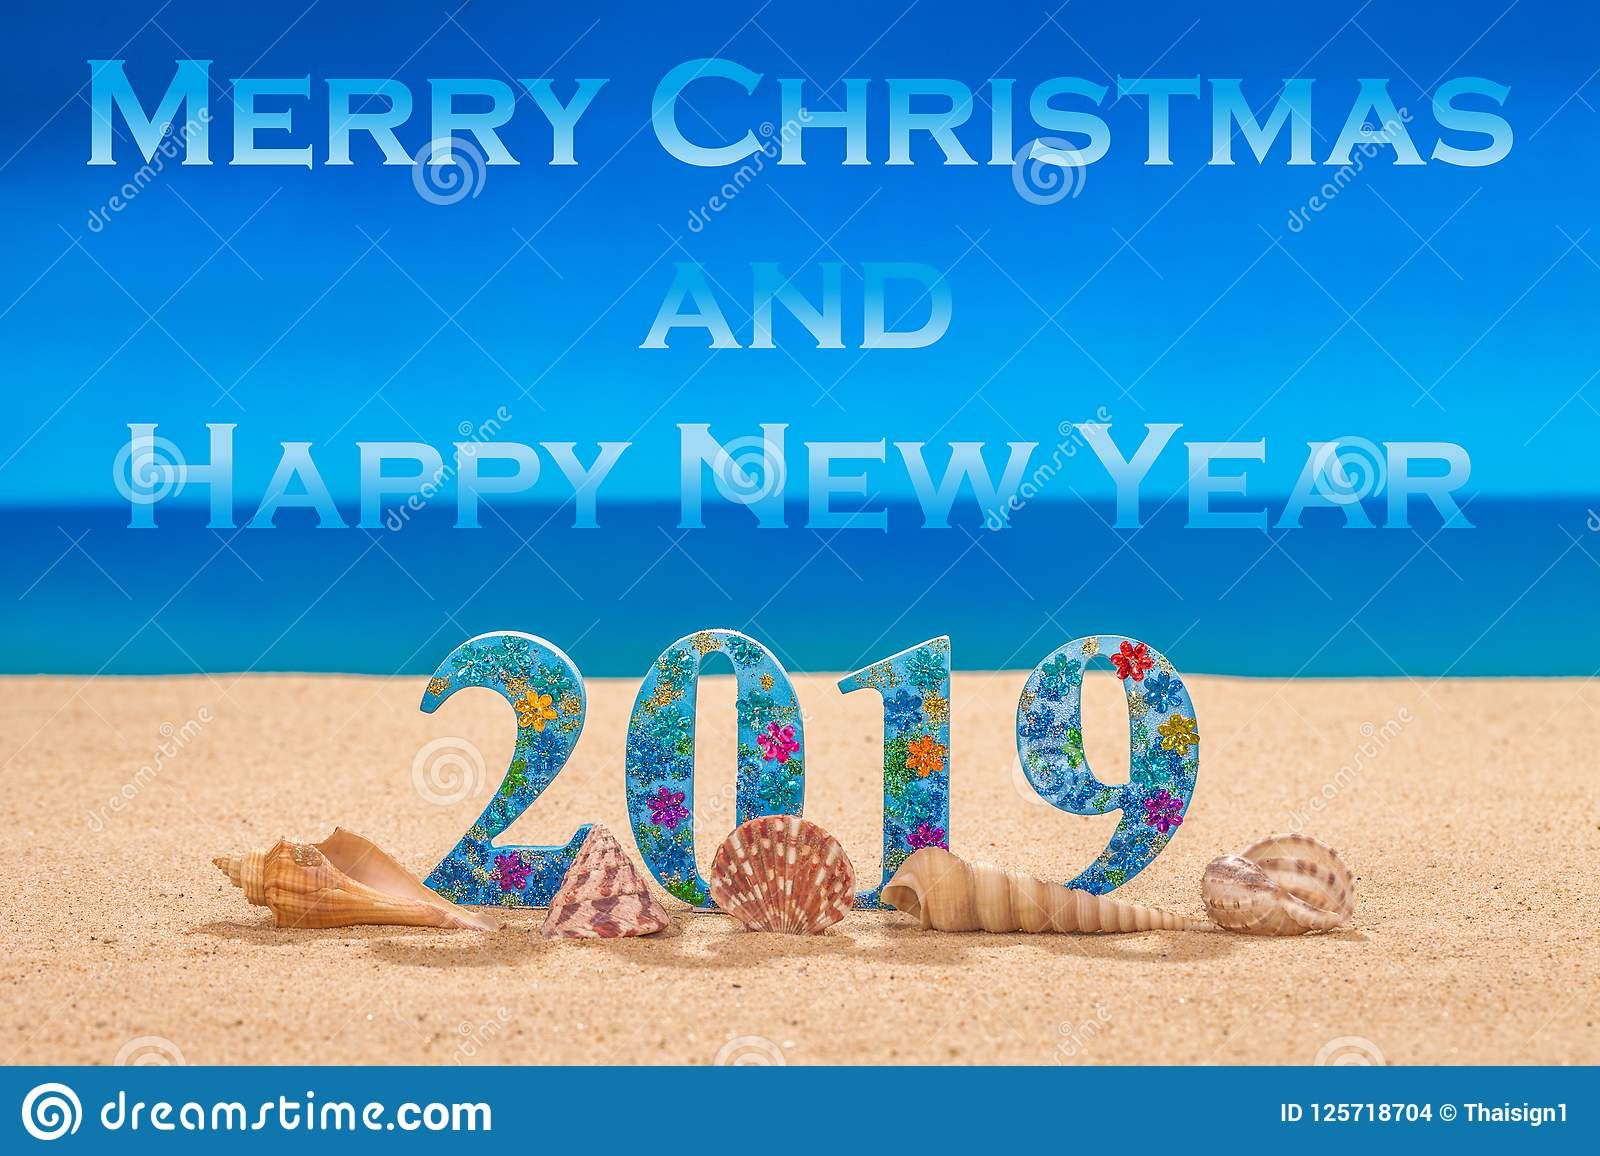 Merry Christmas And Happy New Year 2019 Stock Photo ...